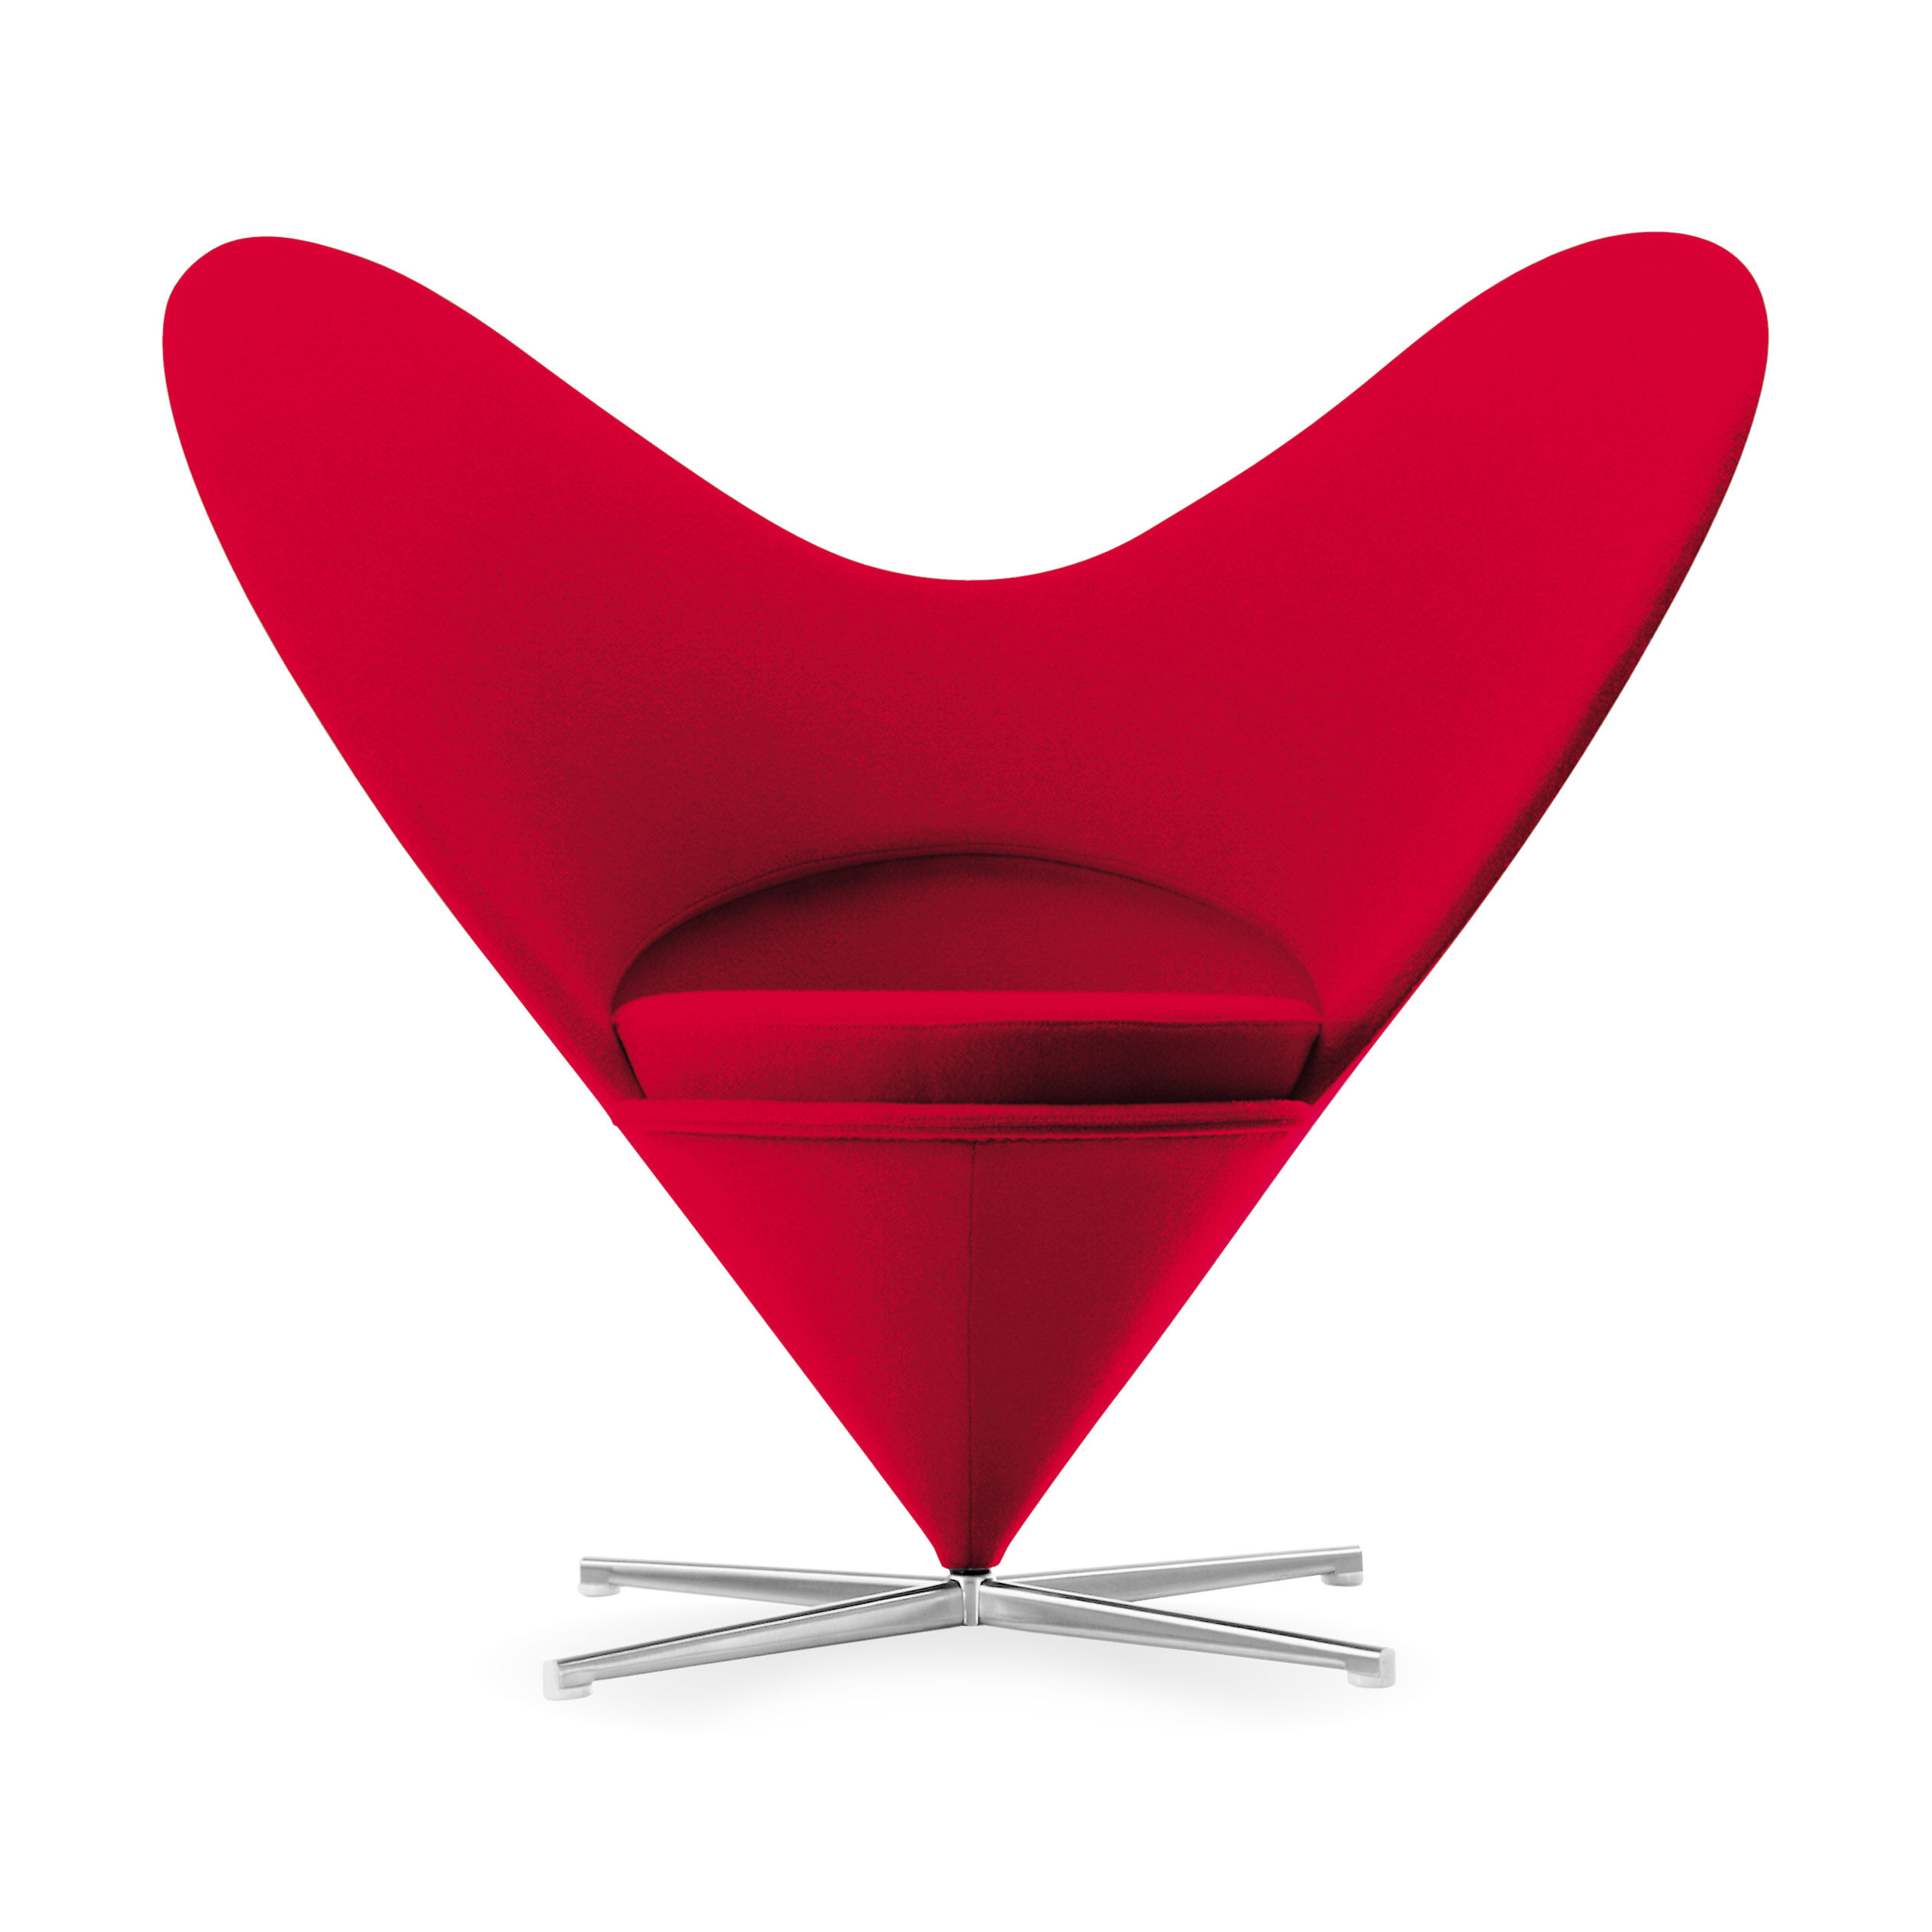 Beau Miniature Chair Panton Heart Shaped Cone In Color